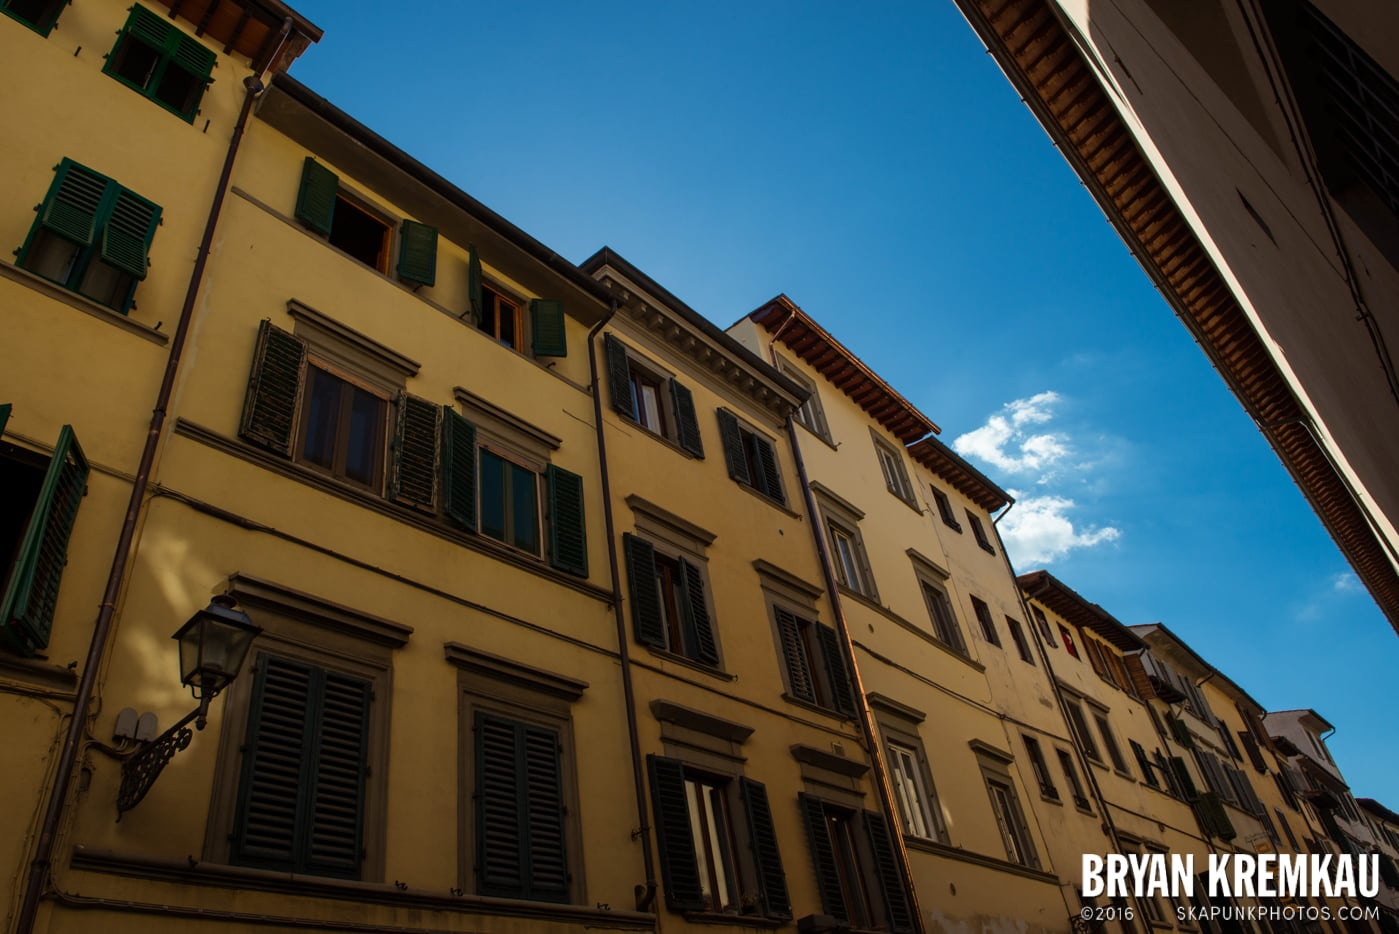 Italy Vacation - Day 11: Florence - 9.19.13 (51)